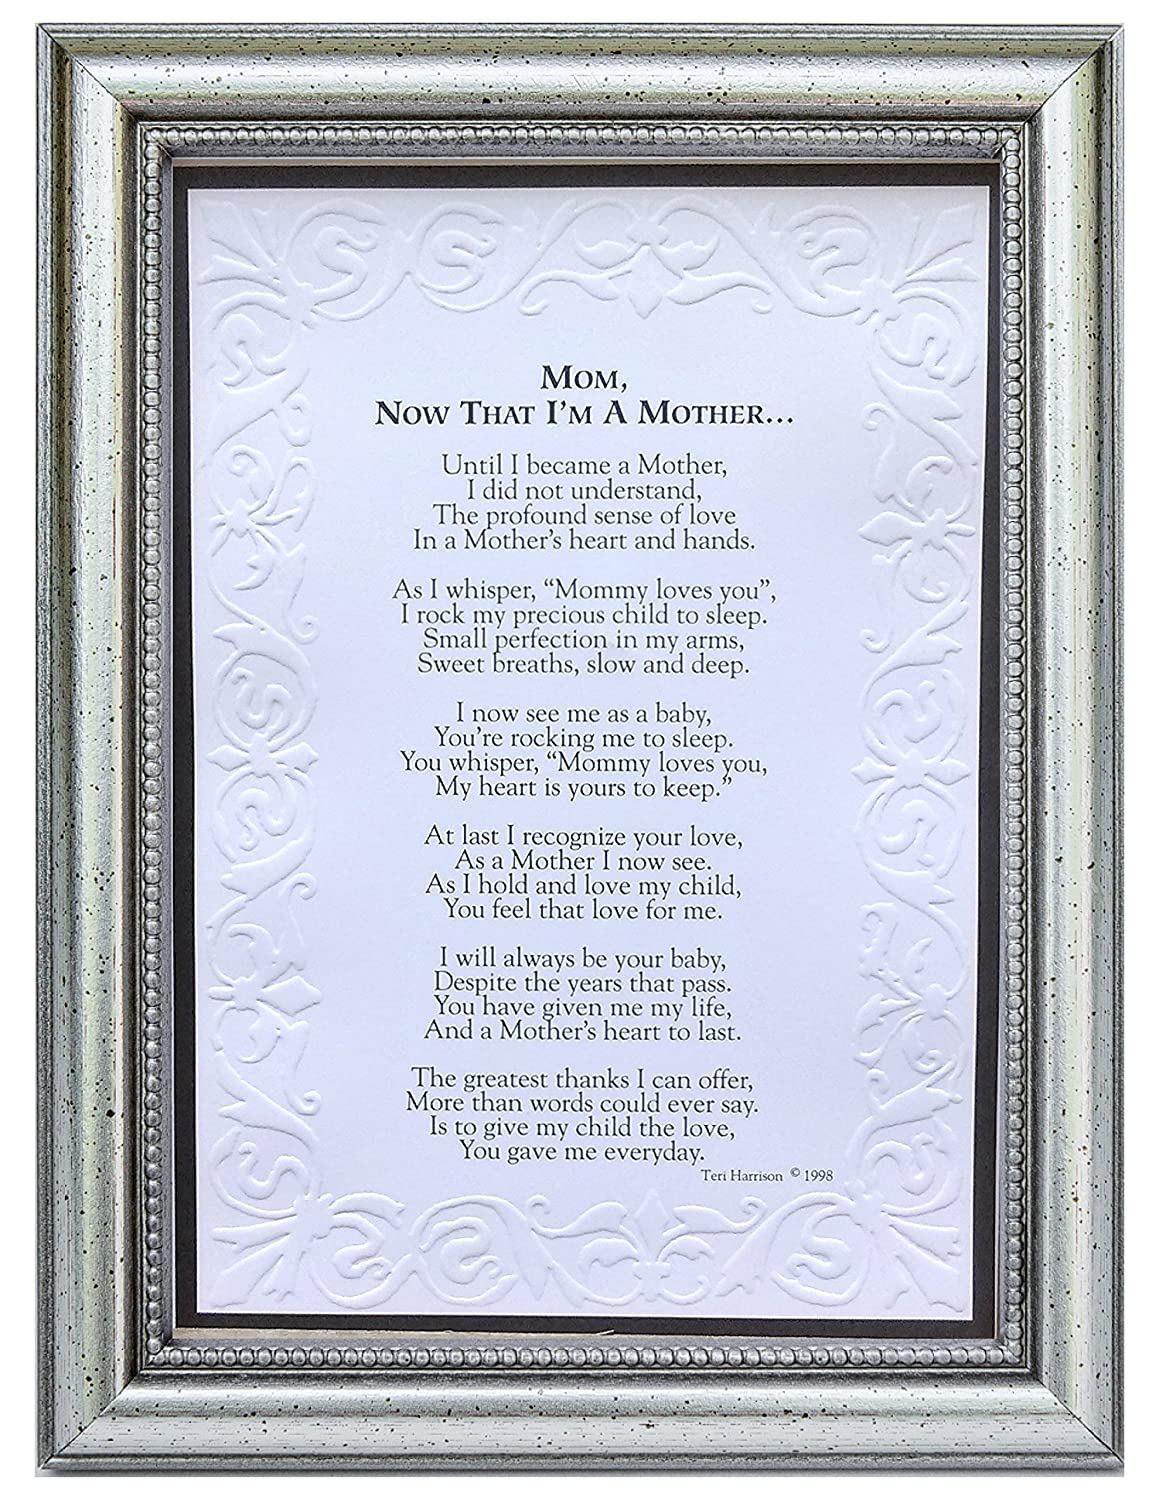 The Grandparent Gift Now That I'm a Mother Frame Gift for Mom from Daughter The Grandparent Gift Co. 4011